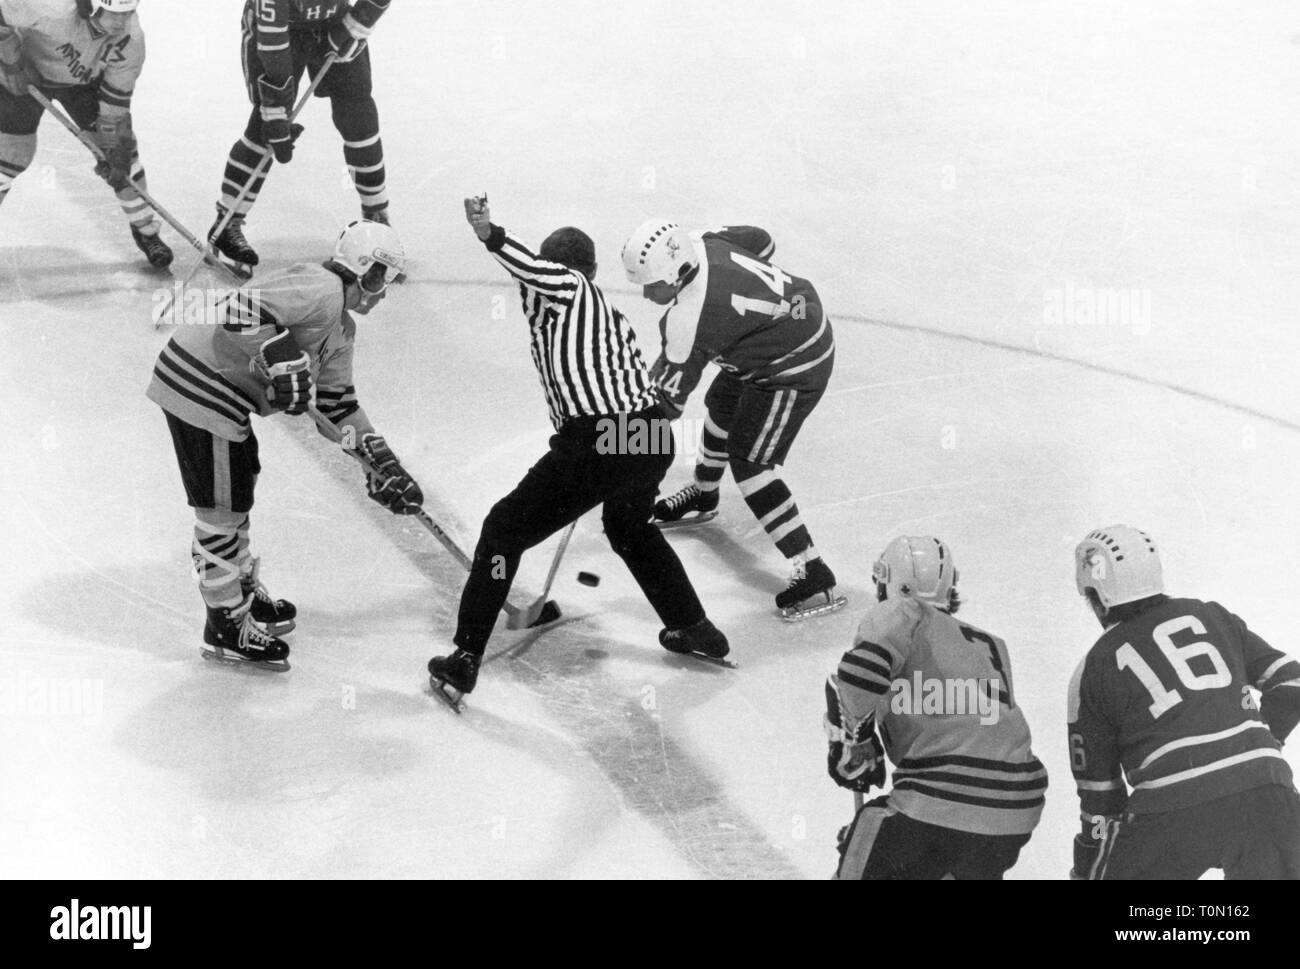 sports, winter sports, ice hockey, game, faceoff in the field centre, North America, 1970s, Additional-Rights-Clearance-Info-Not-Available - Stock Image